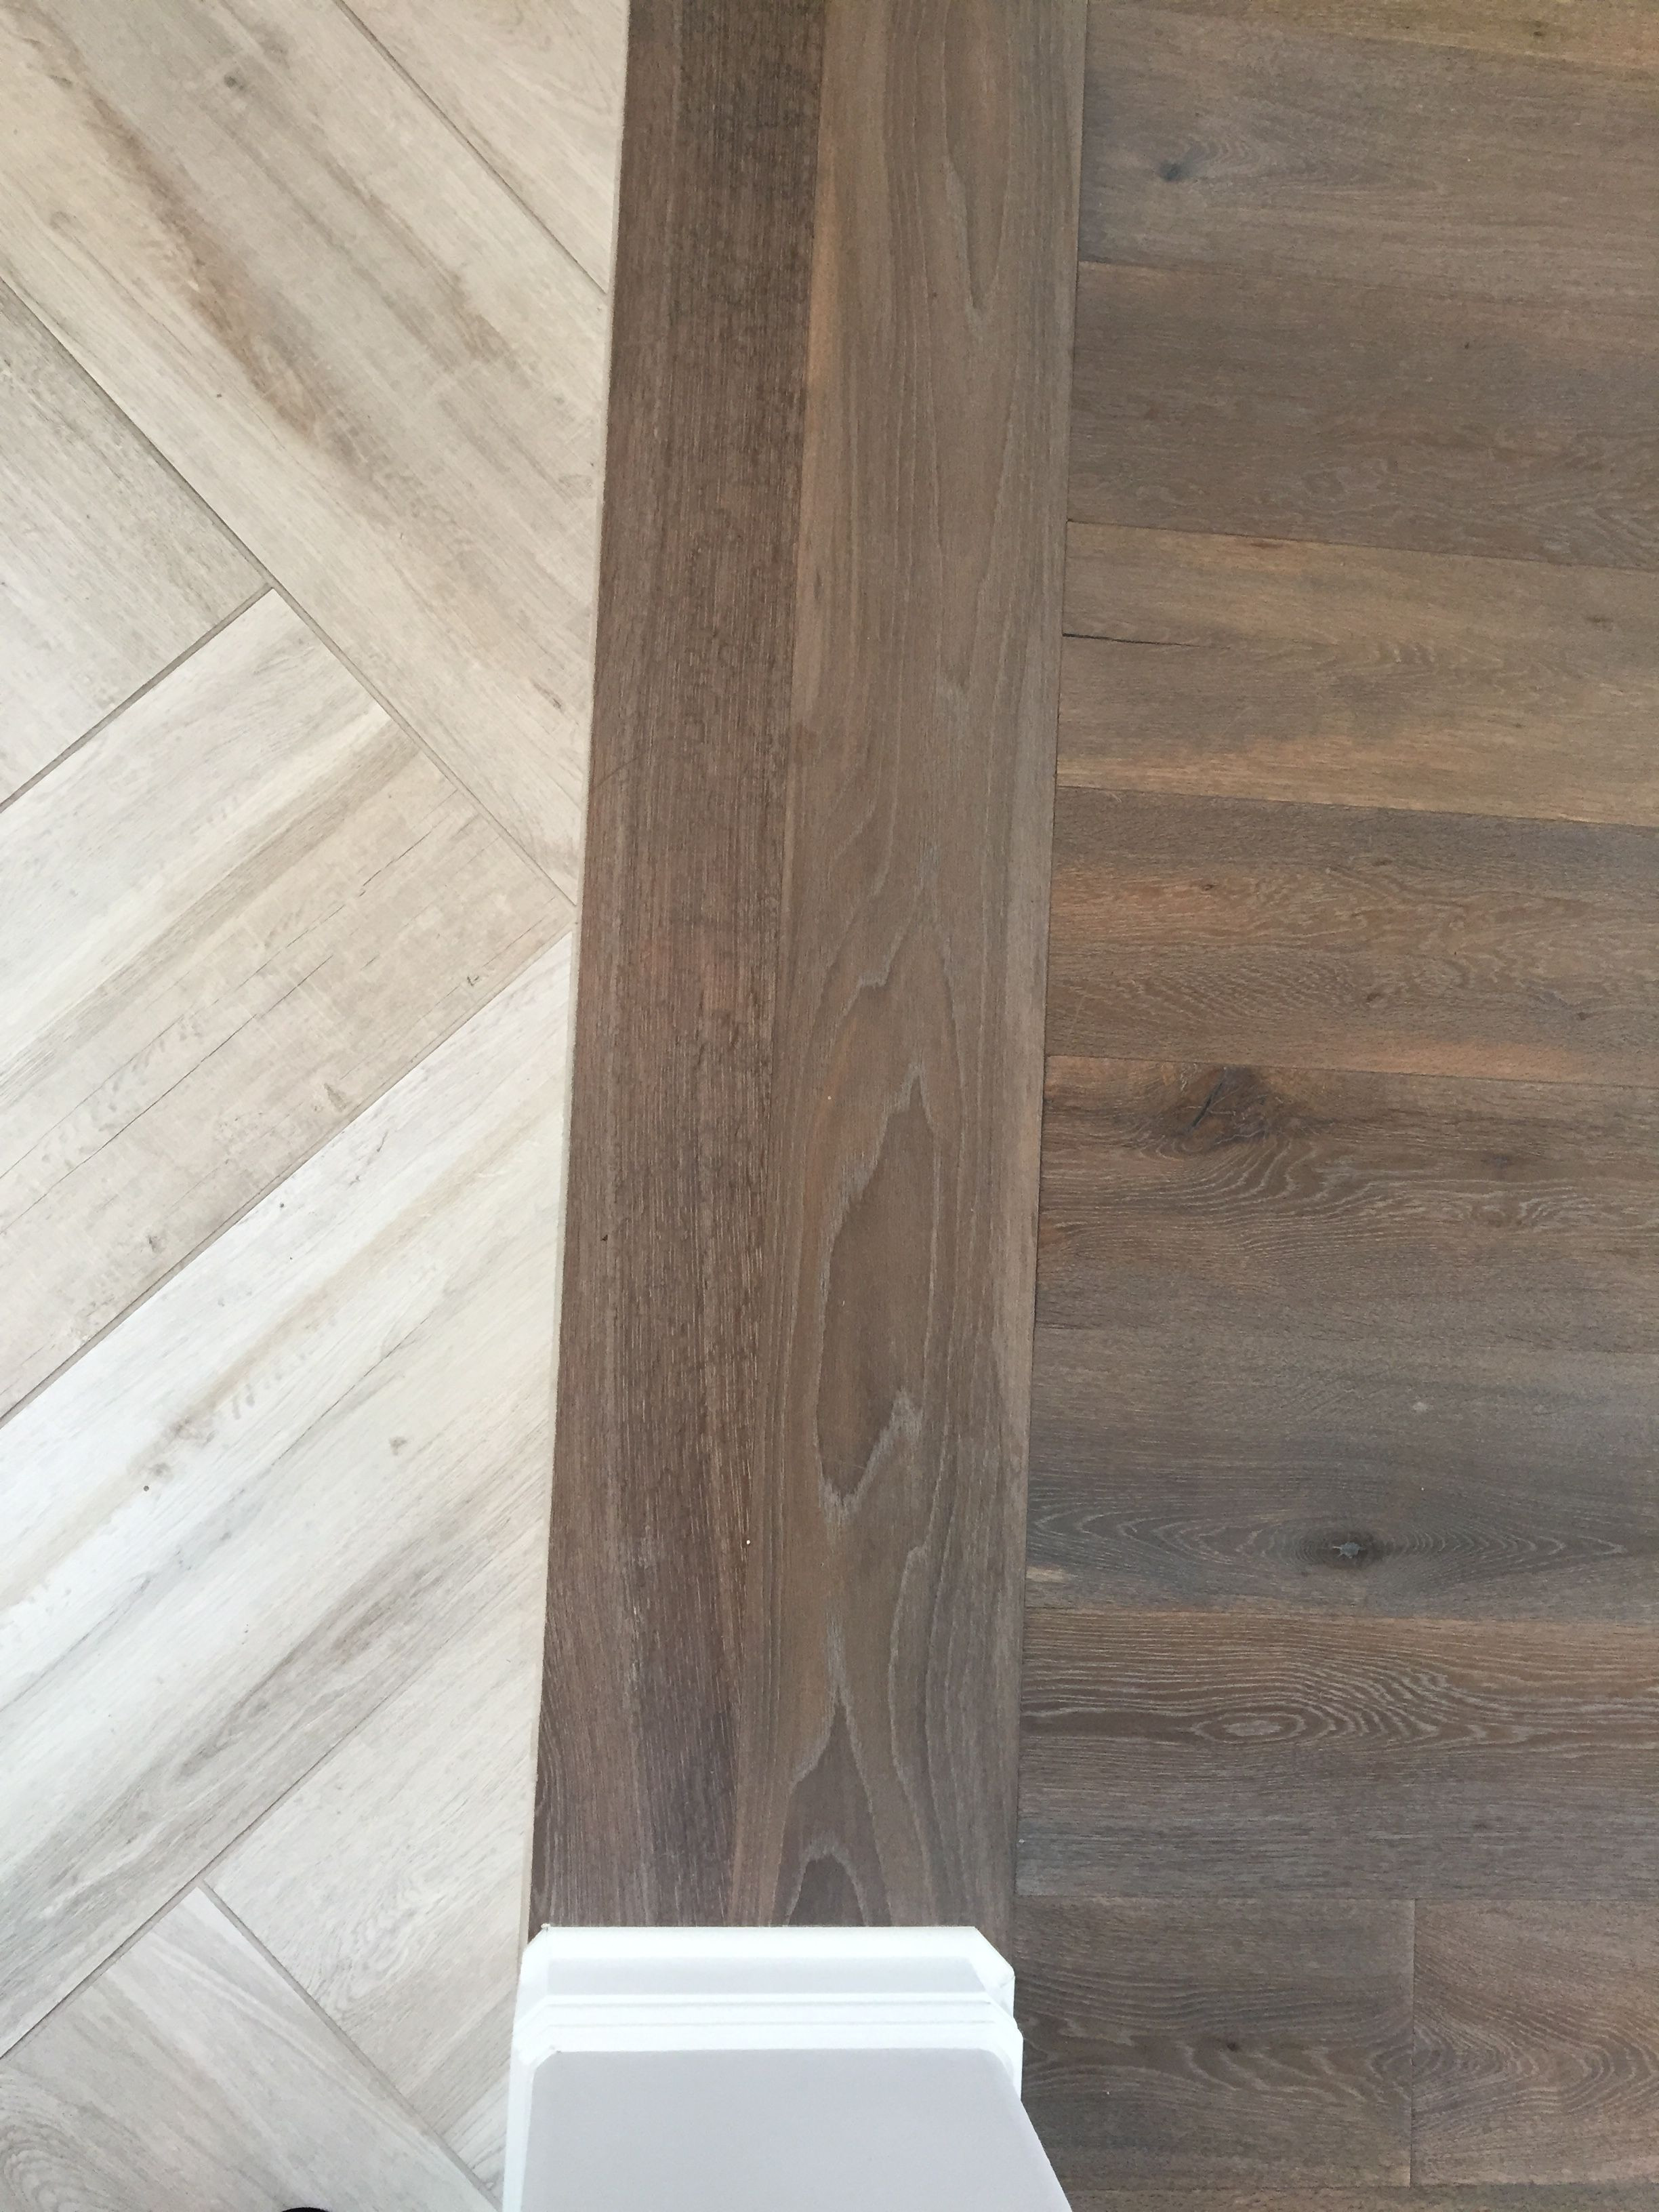 Hardwood Floor Hallway Of Floor Transition Laminate to Herringbone Tile Pattern Model Pertaining to Floor Transition Laminate to Herringbone Tile Pattern Herringbone Tile Pattern Herringbone Wood Floor